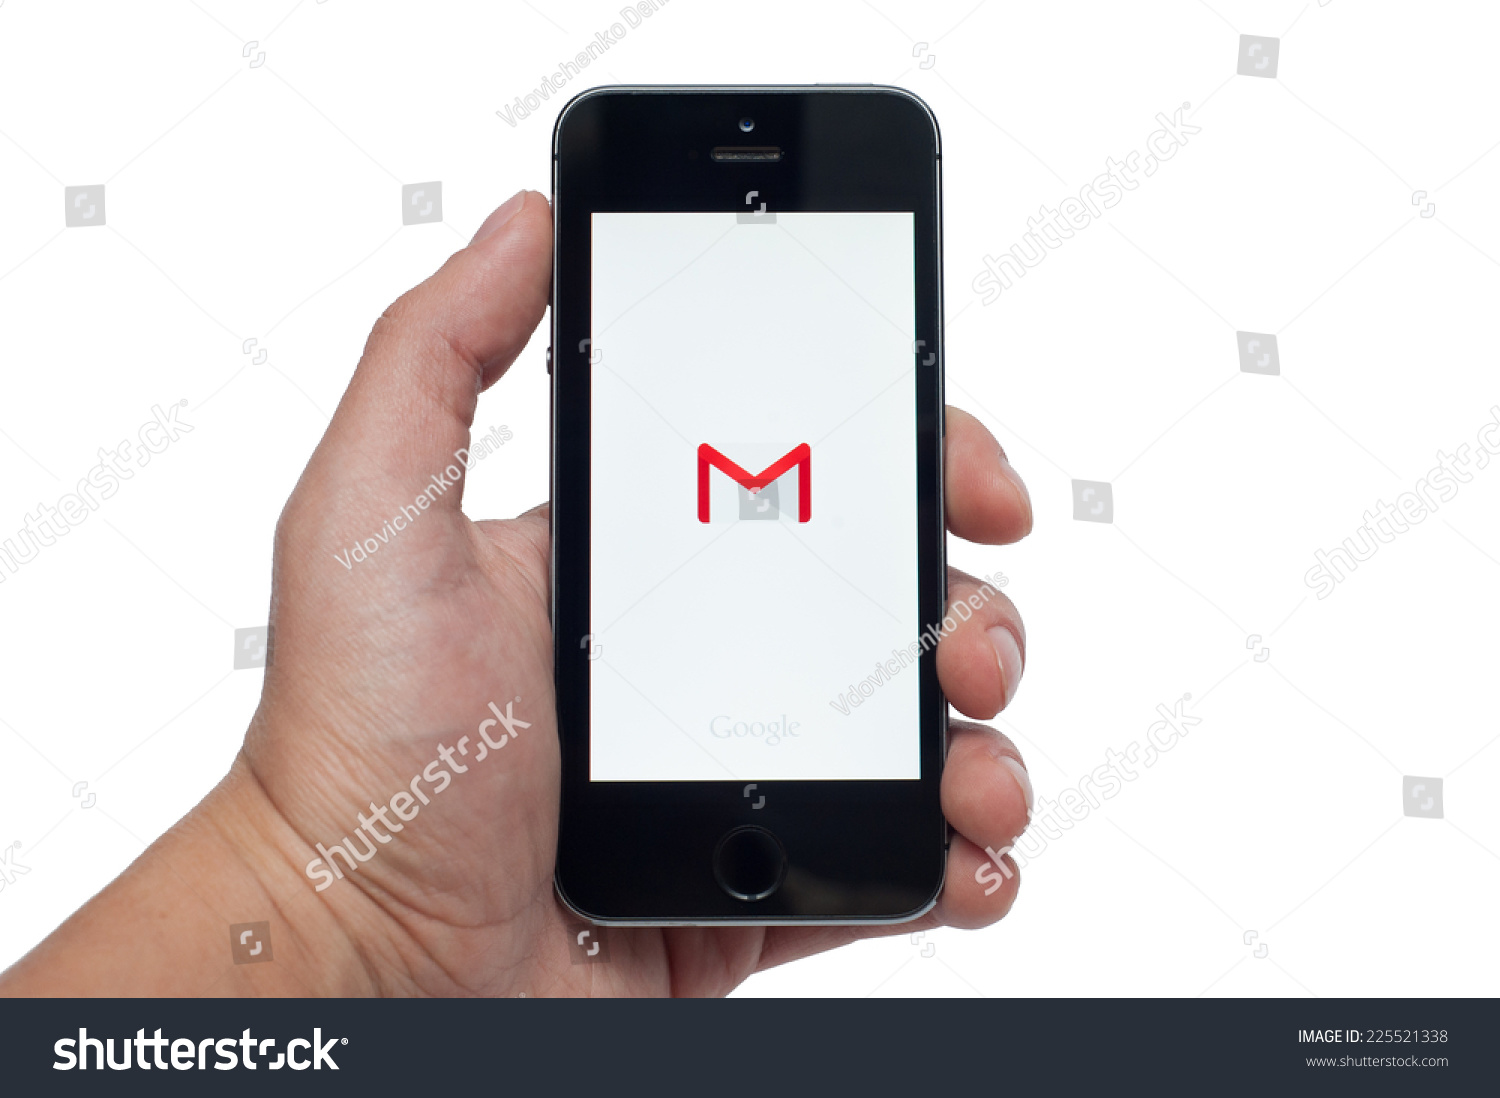 how to add photo to gmail app